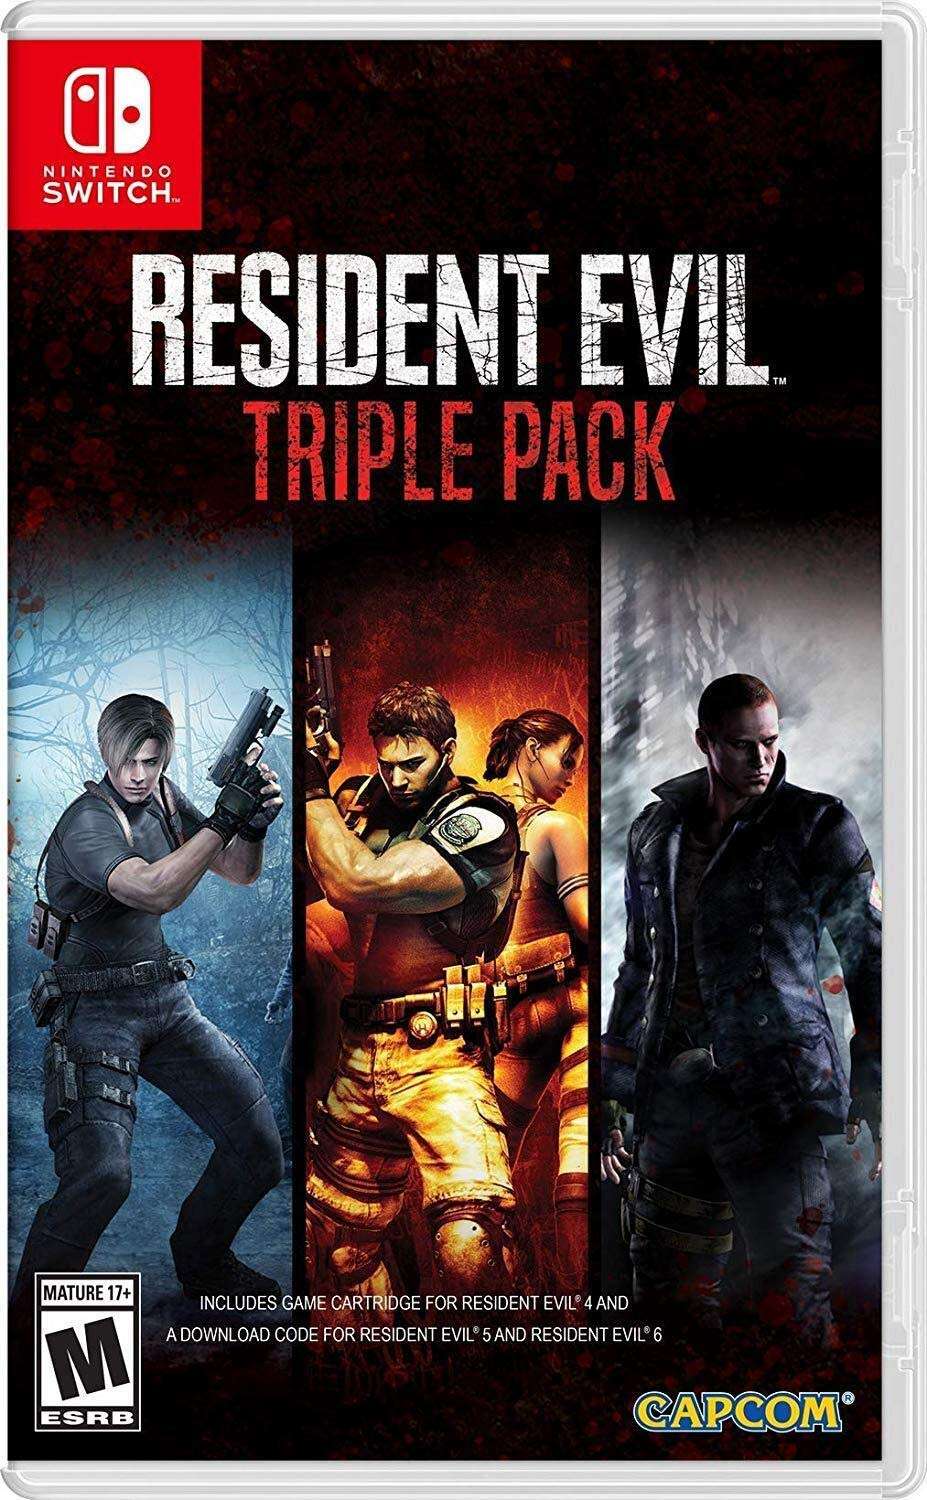 Amazon Com Resident Evil Triple Pack Nintendo Switch Capcom U S A Inc Video Games